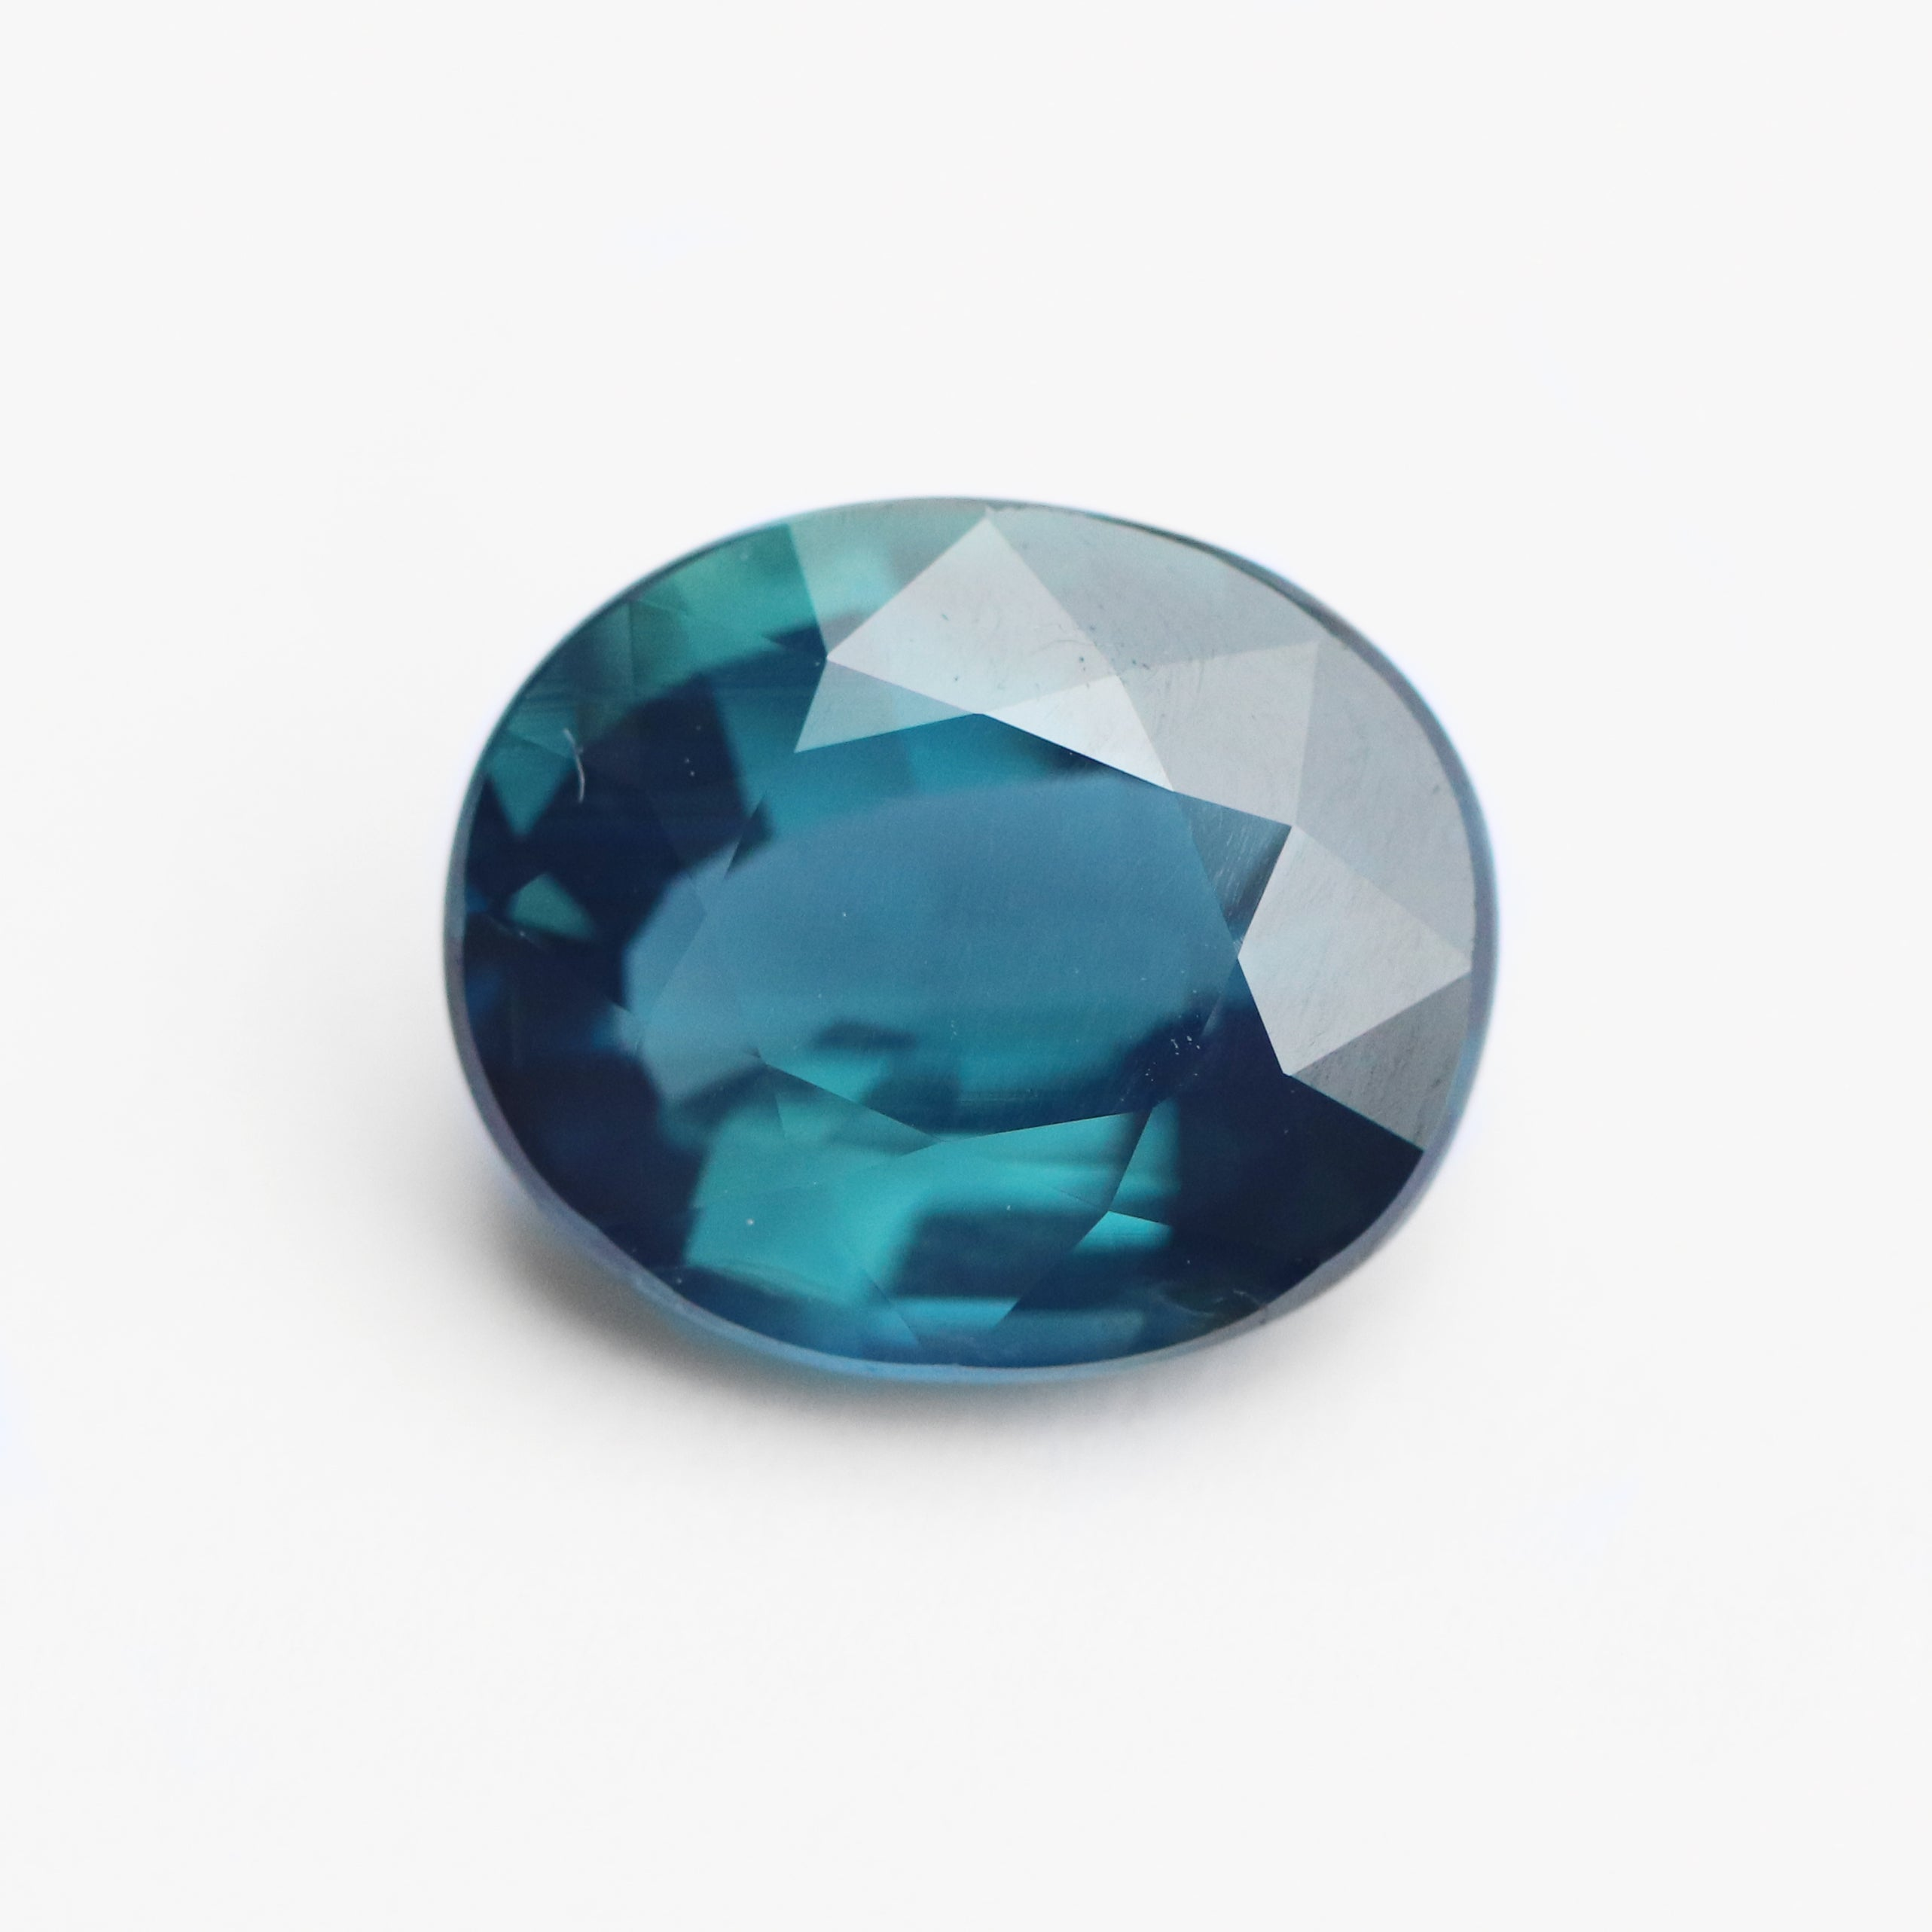 3.12 carat blue green teal oval sapphire - custom work - inventory code: MTBO312 - Midwinter Co. Alternative Bridal Rings and Modern Fine Jewelry